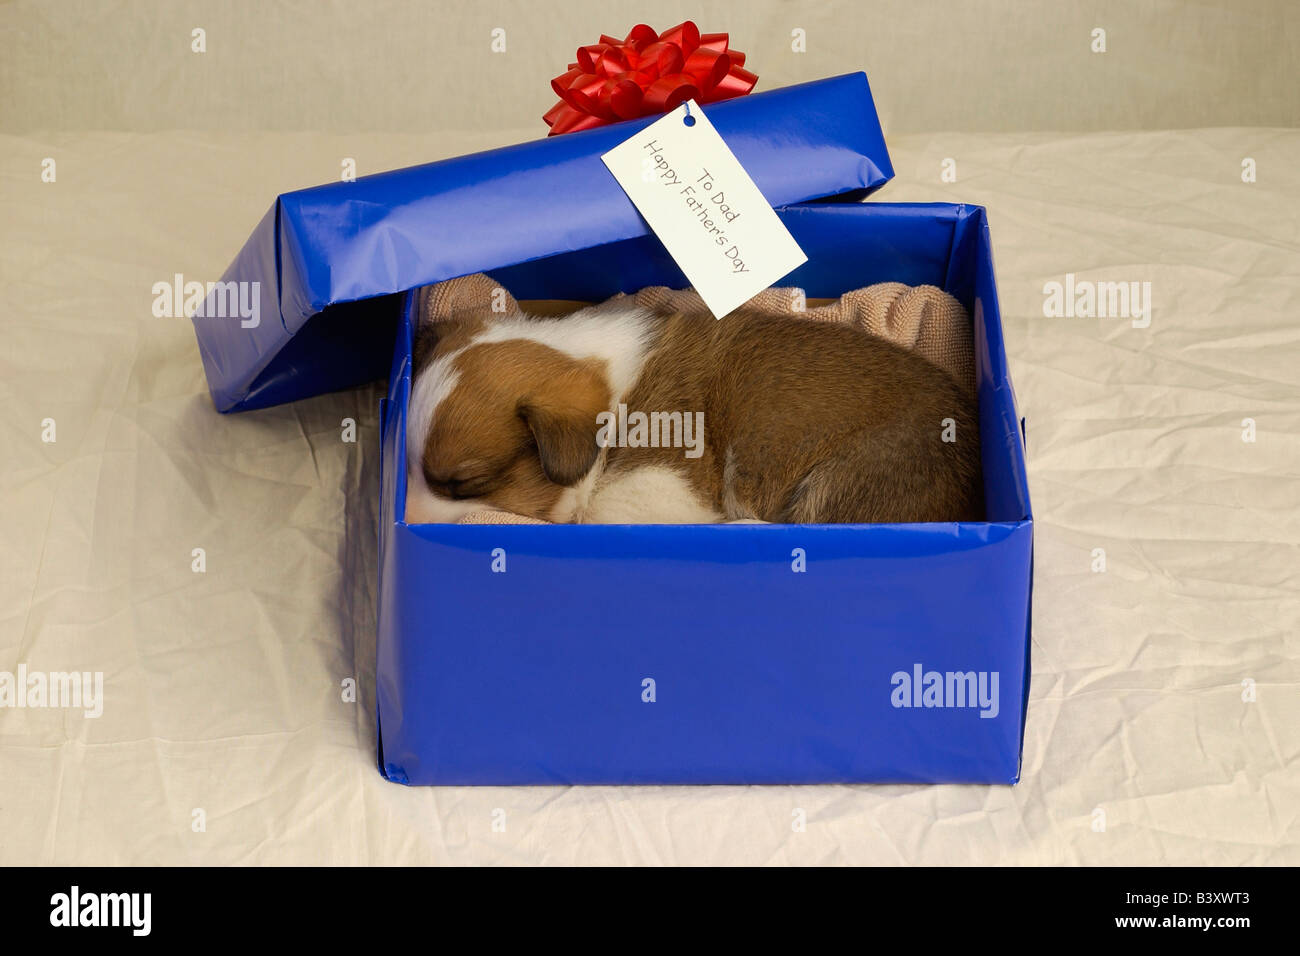 Puppy sleeping in a gift box - Stock Image